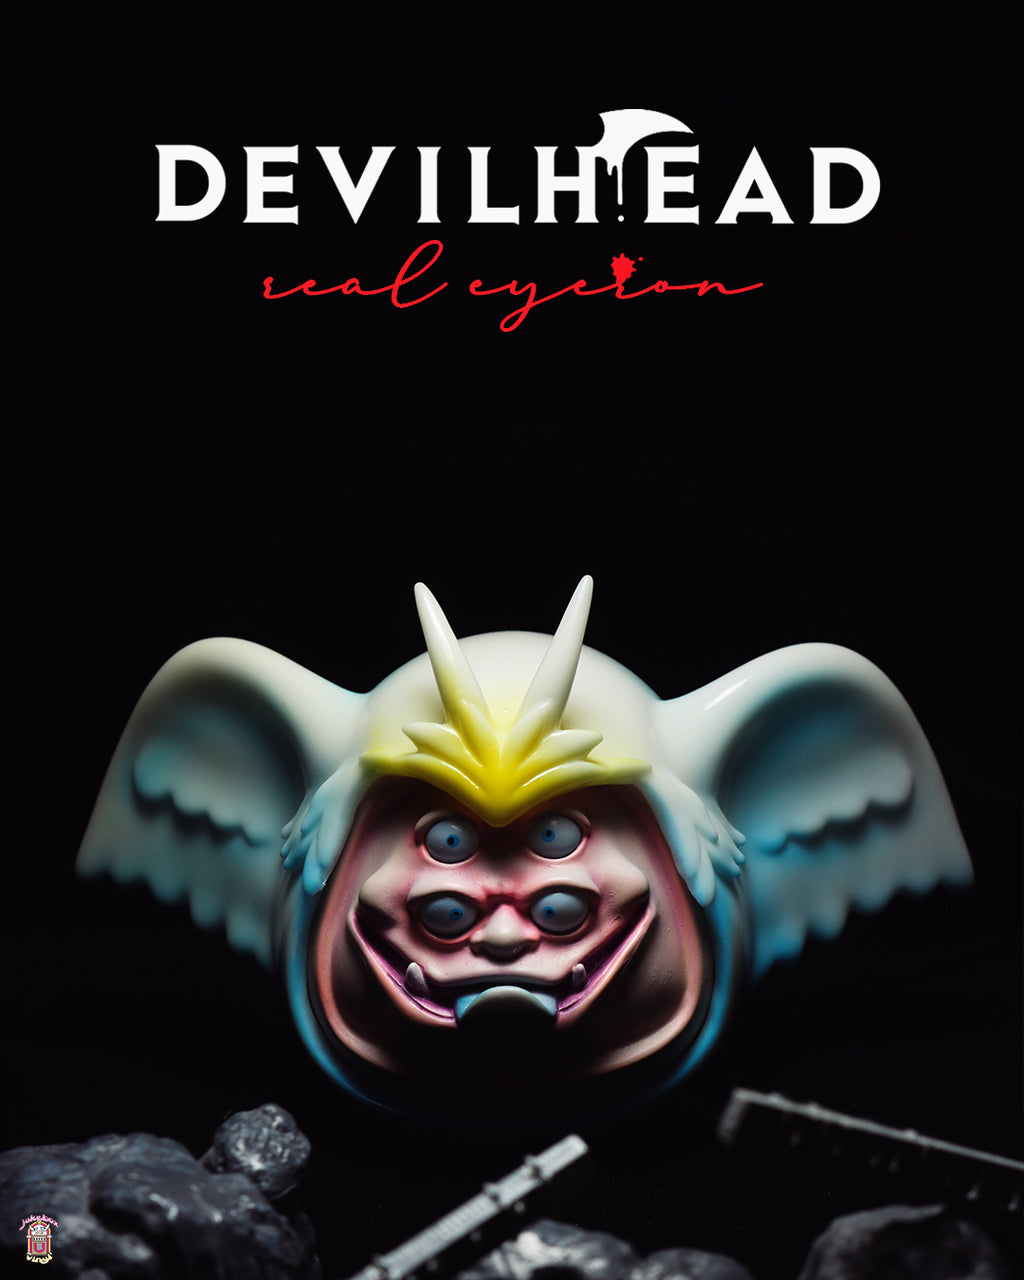 Jukebox Vinyl brings you MonsterMind Go Nagai Devilman series, Devilhead (Sirene) designer toy and art toy